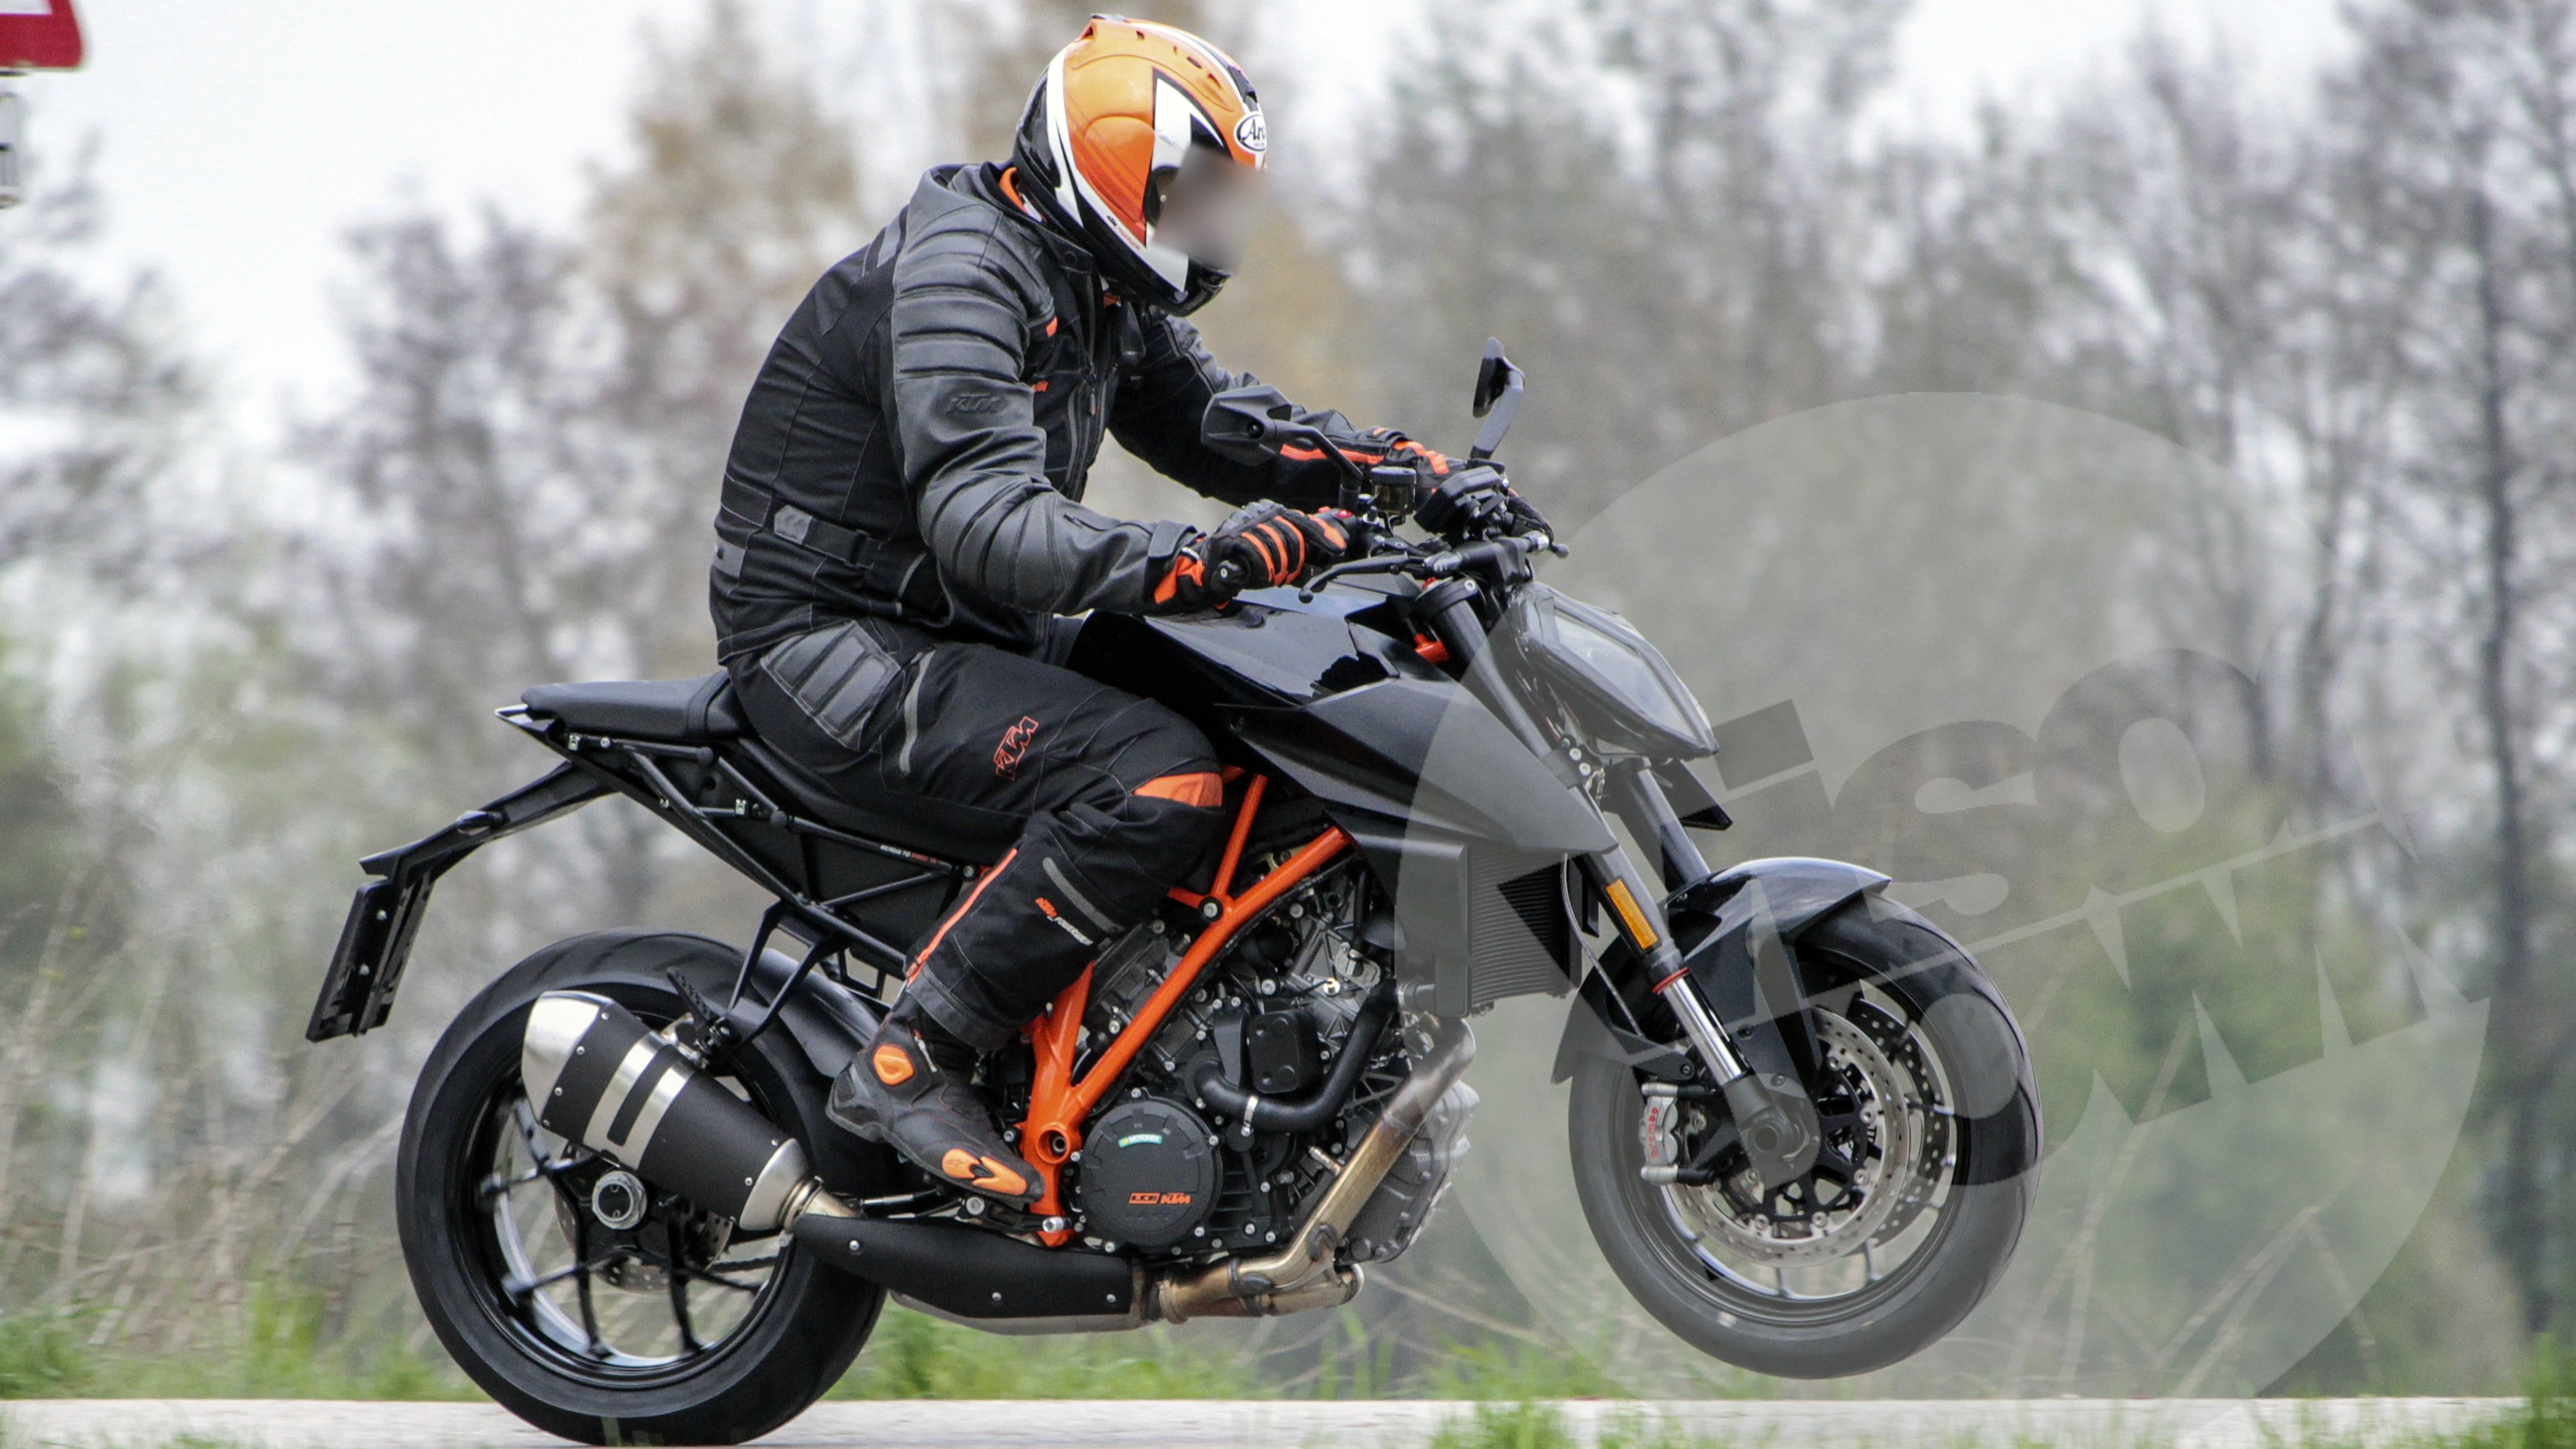 2017 ktm 1290 super duke r spotted testing iamabiker. Black Bedroom Furniture Sets. Home Design Ideas